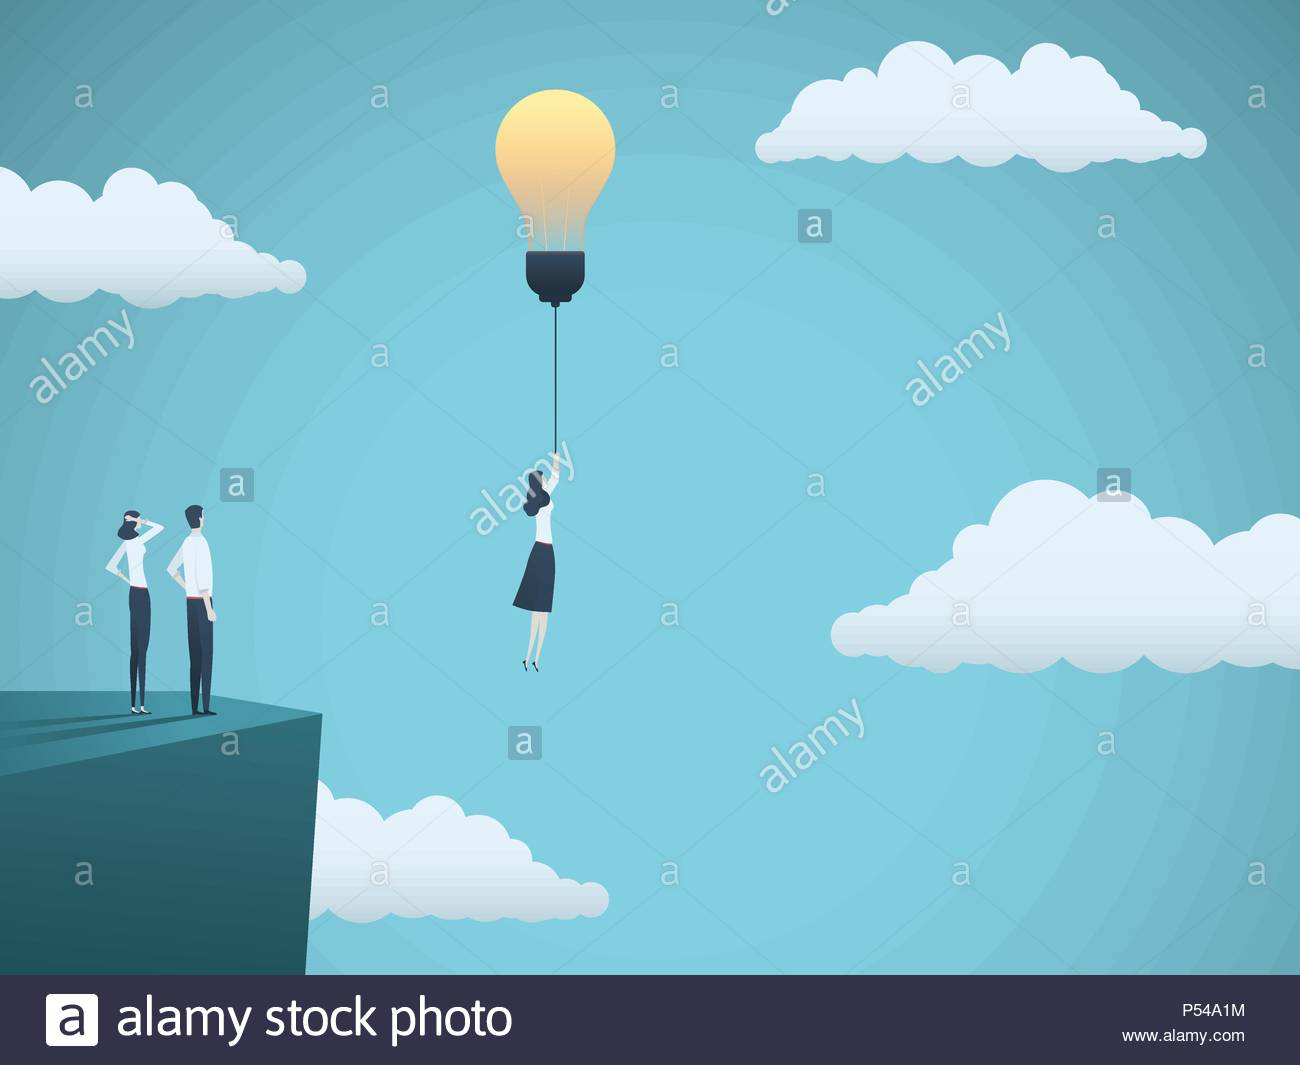 Creative Idea In Business Vector Concept With Businesswoman Flying